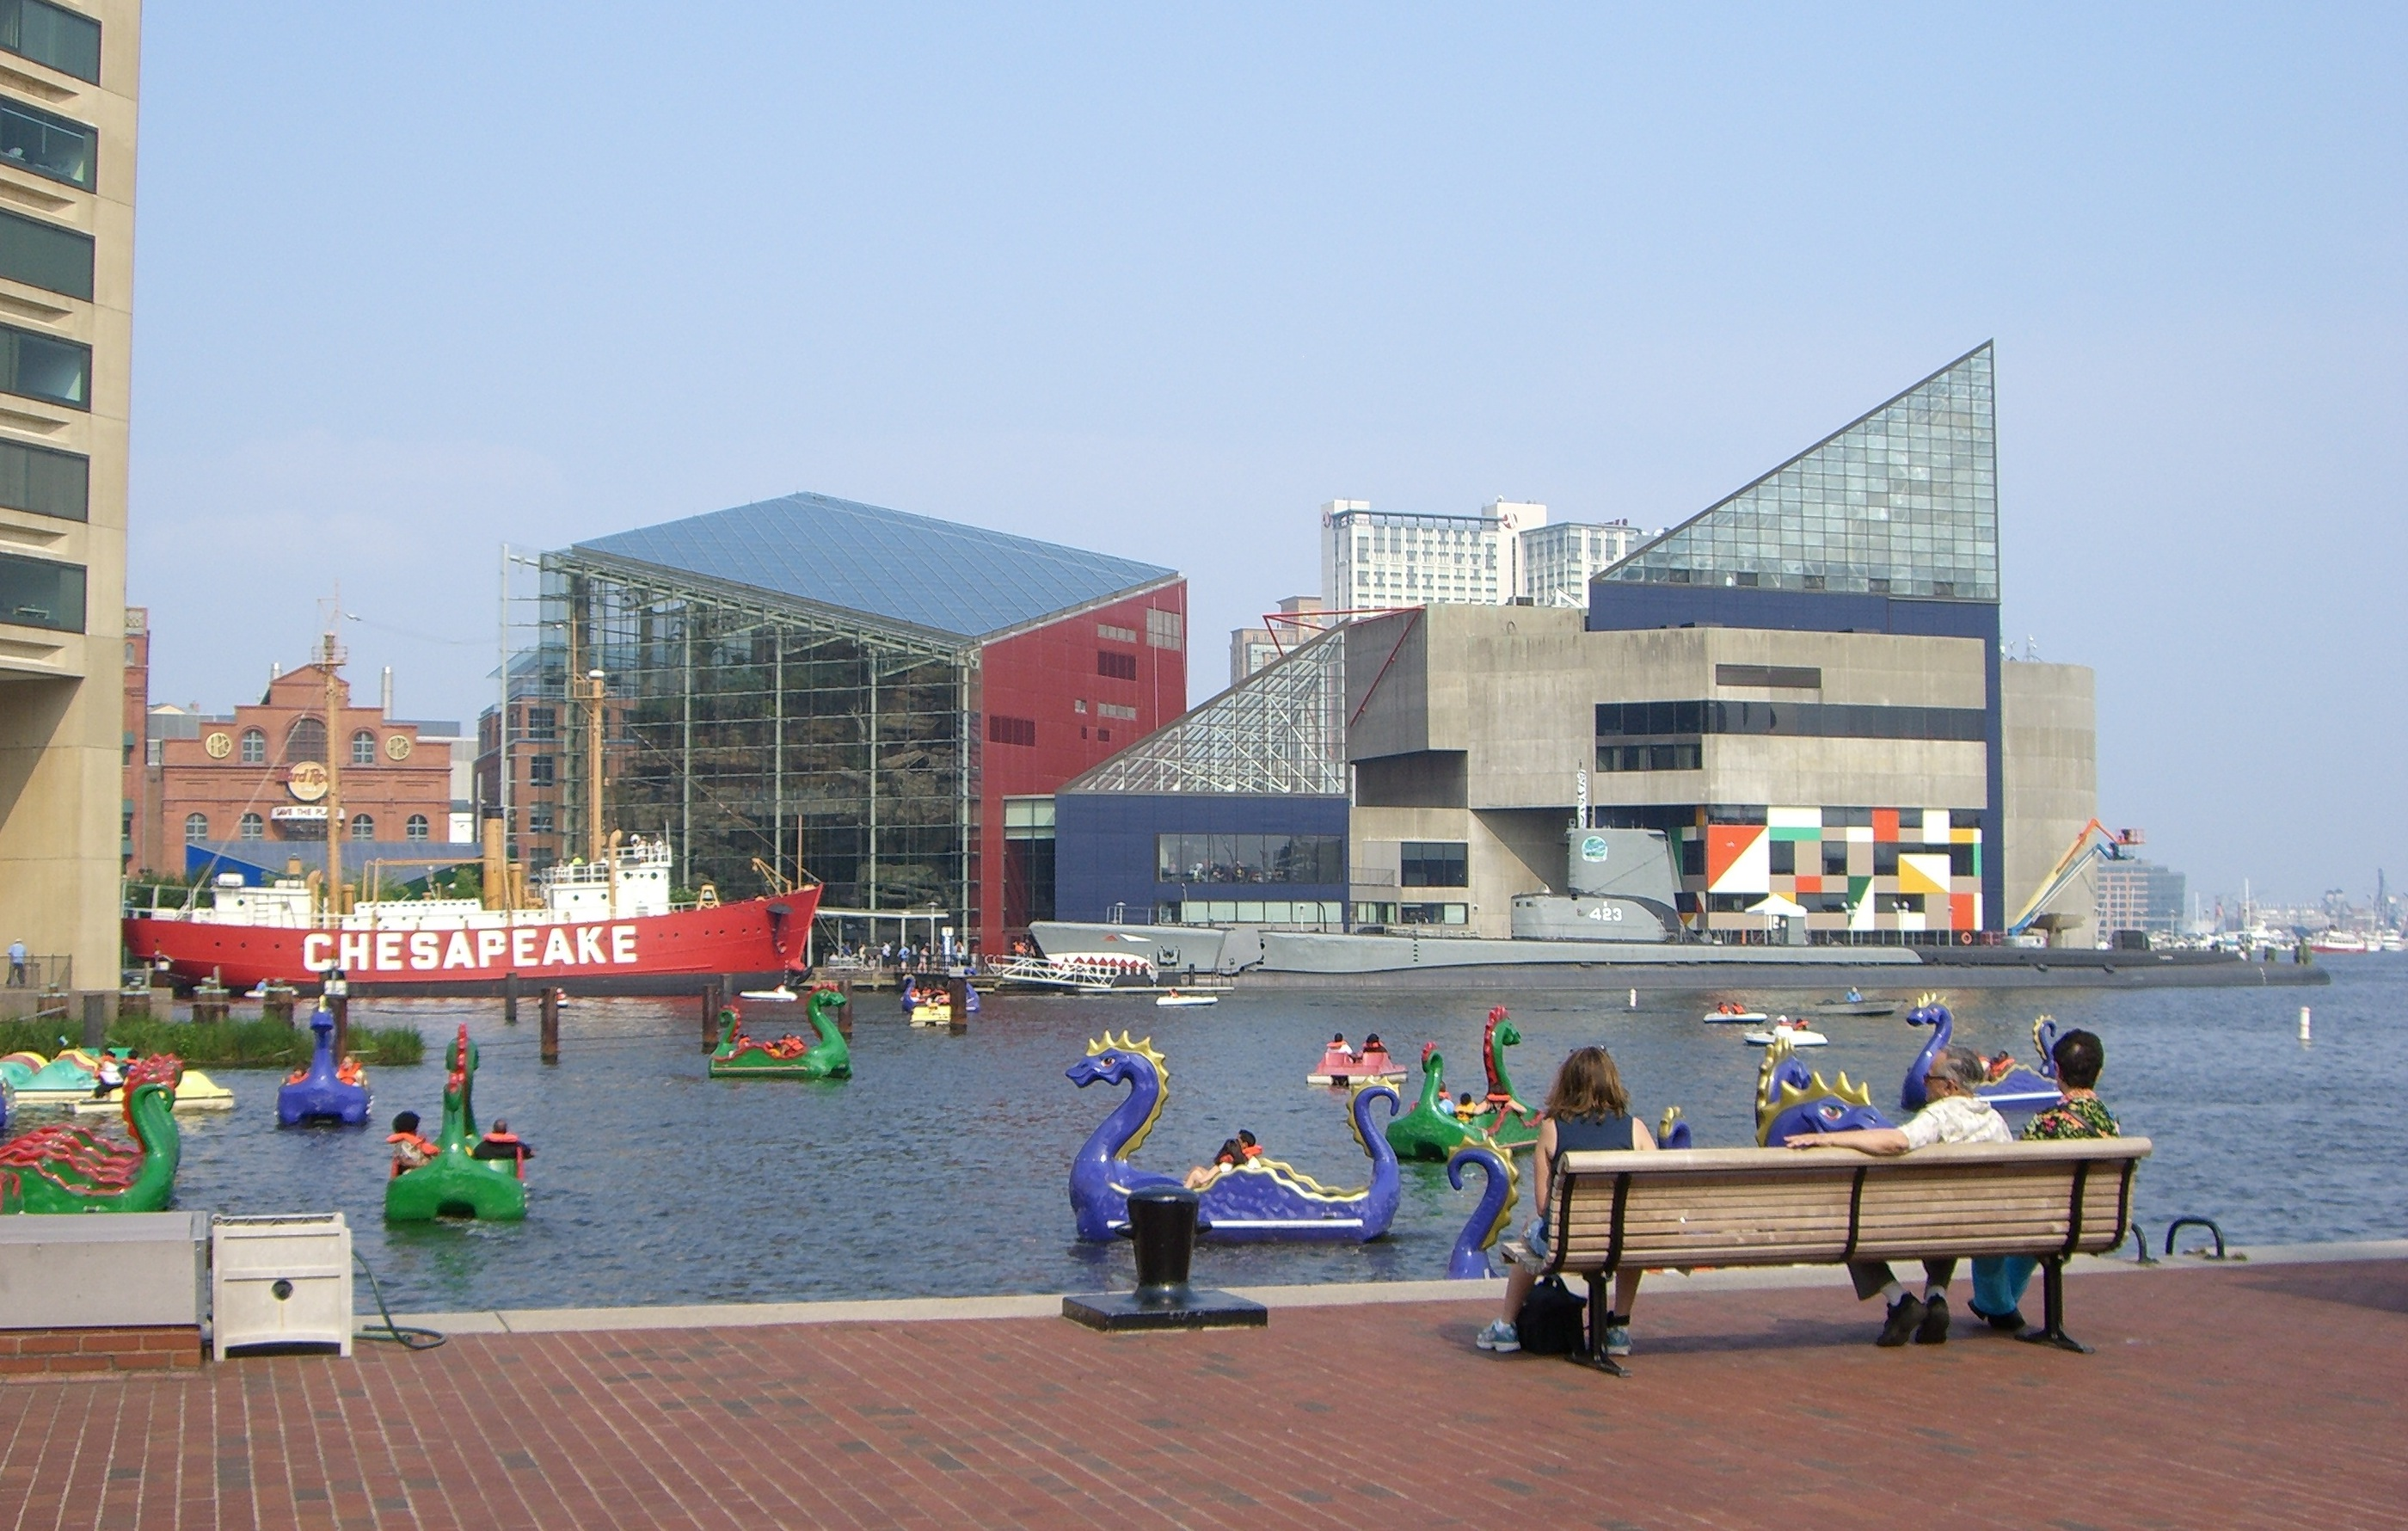 live baltimore website analysis The university of baltimore provides knowledge that works in a vibrant, urban setting ub's undergraduate, graduate and professional degree programs range from.